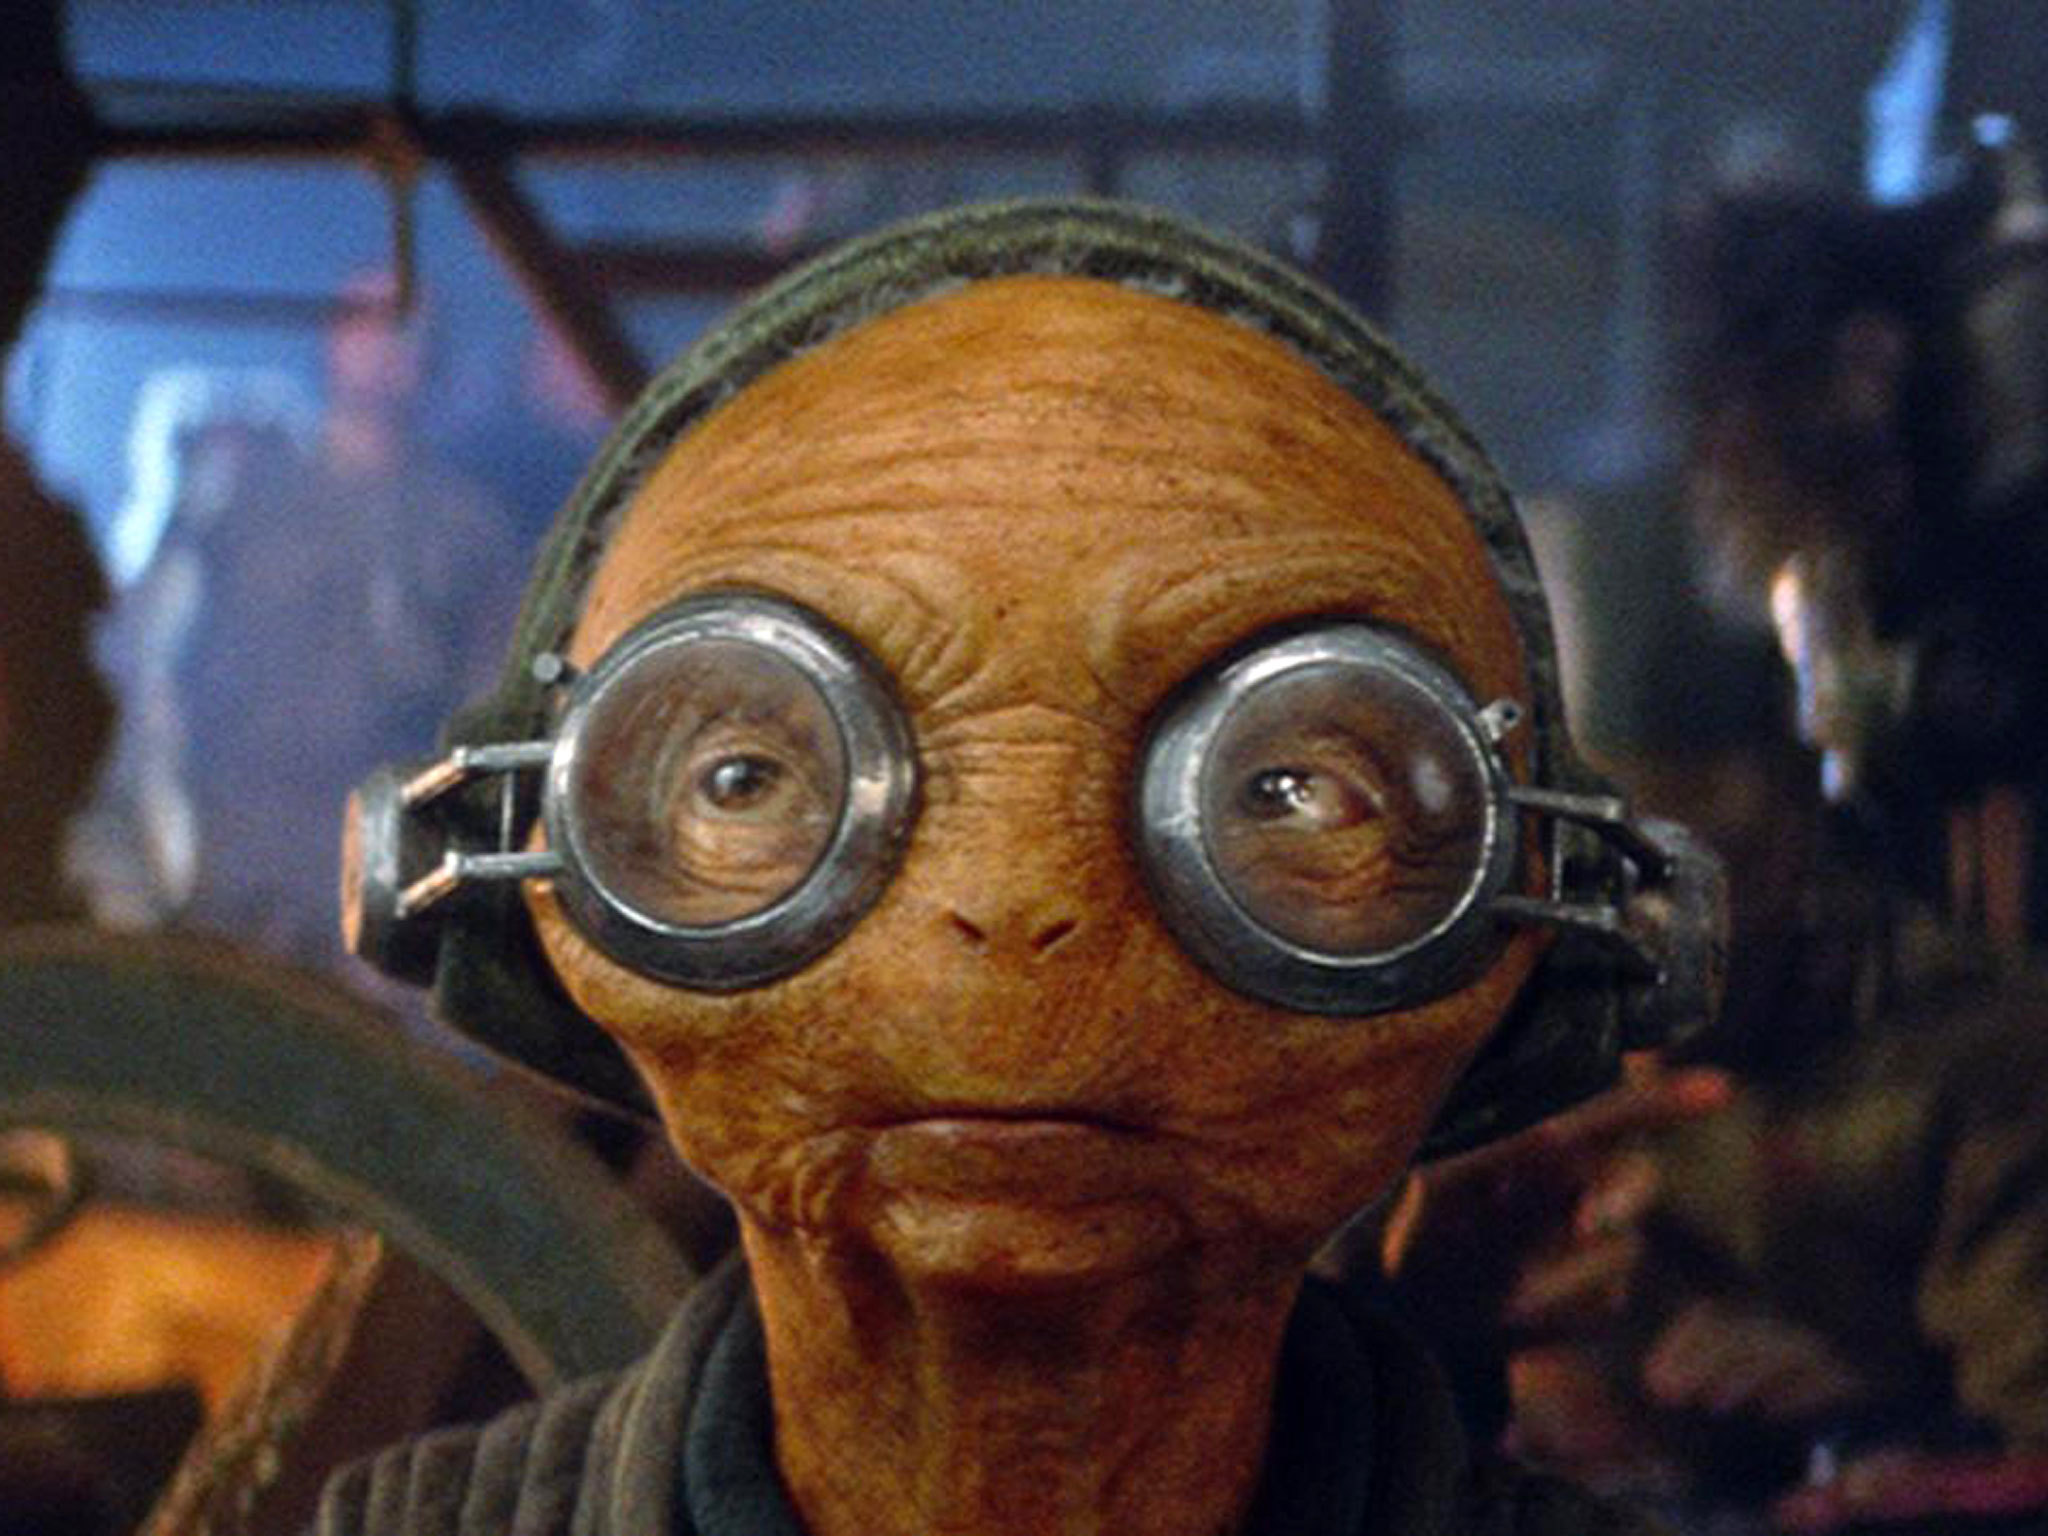 The 50 best Star Wars characters, maz kanata